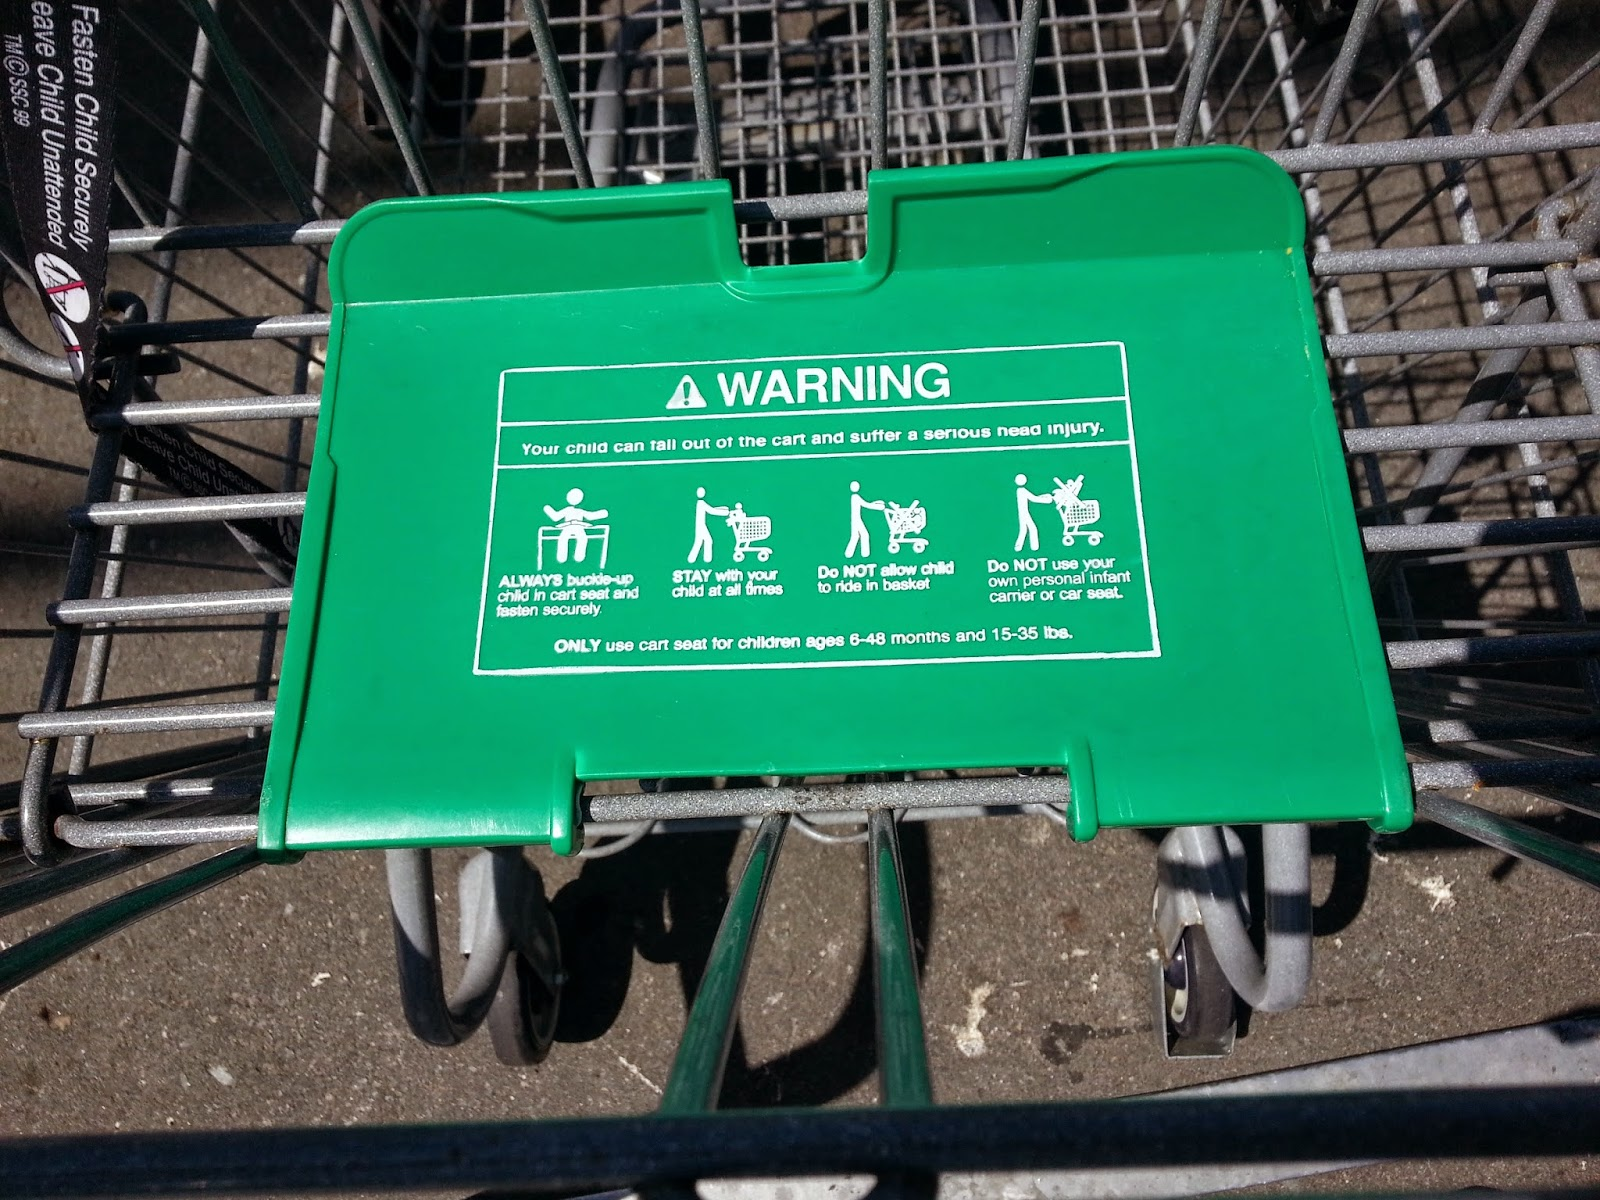 Notice The Far Right Image Warning Telling Parents NOT To Place Their Car Seat On Shopping Cart